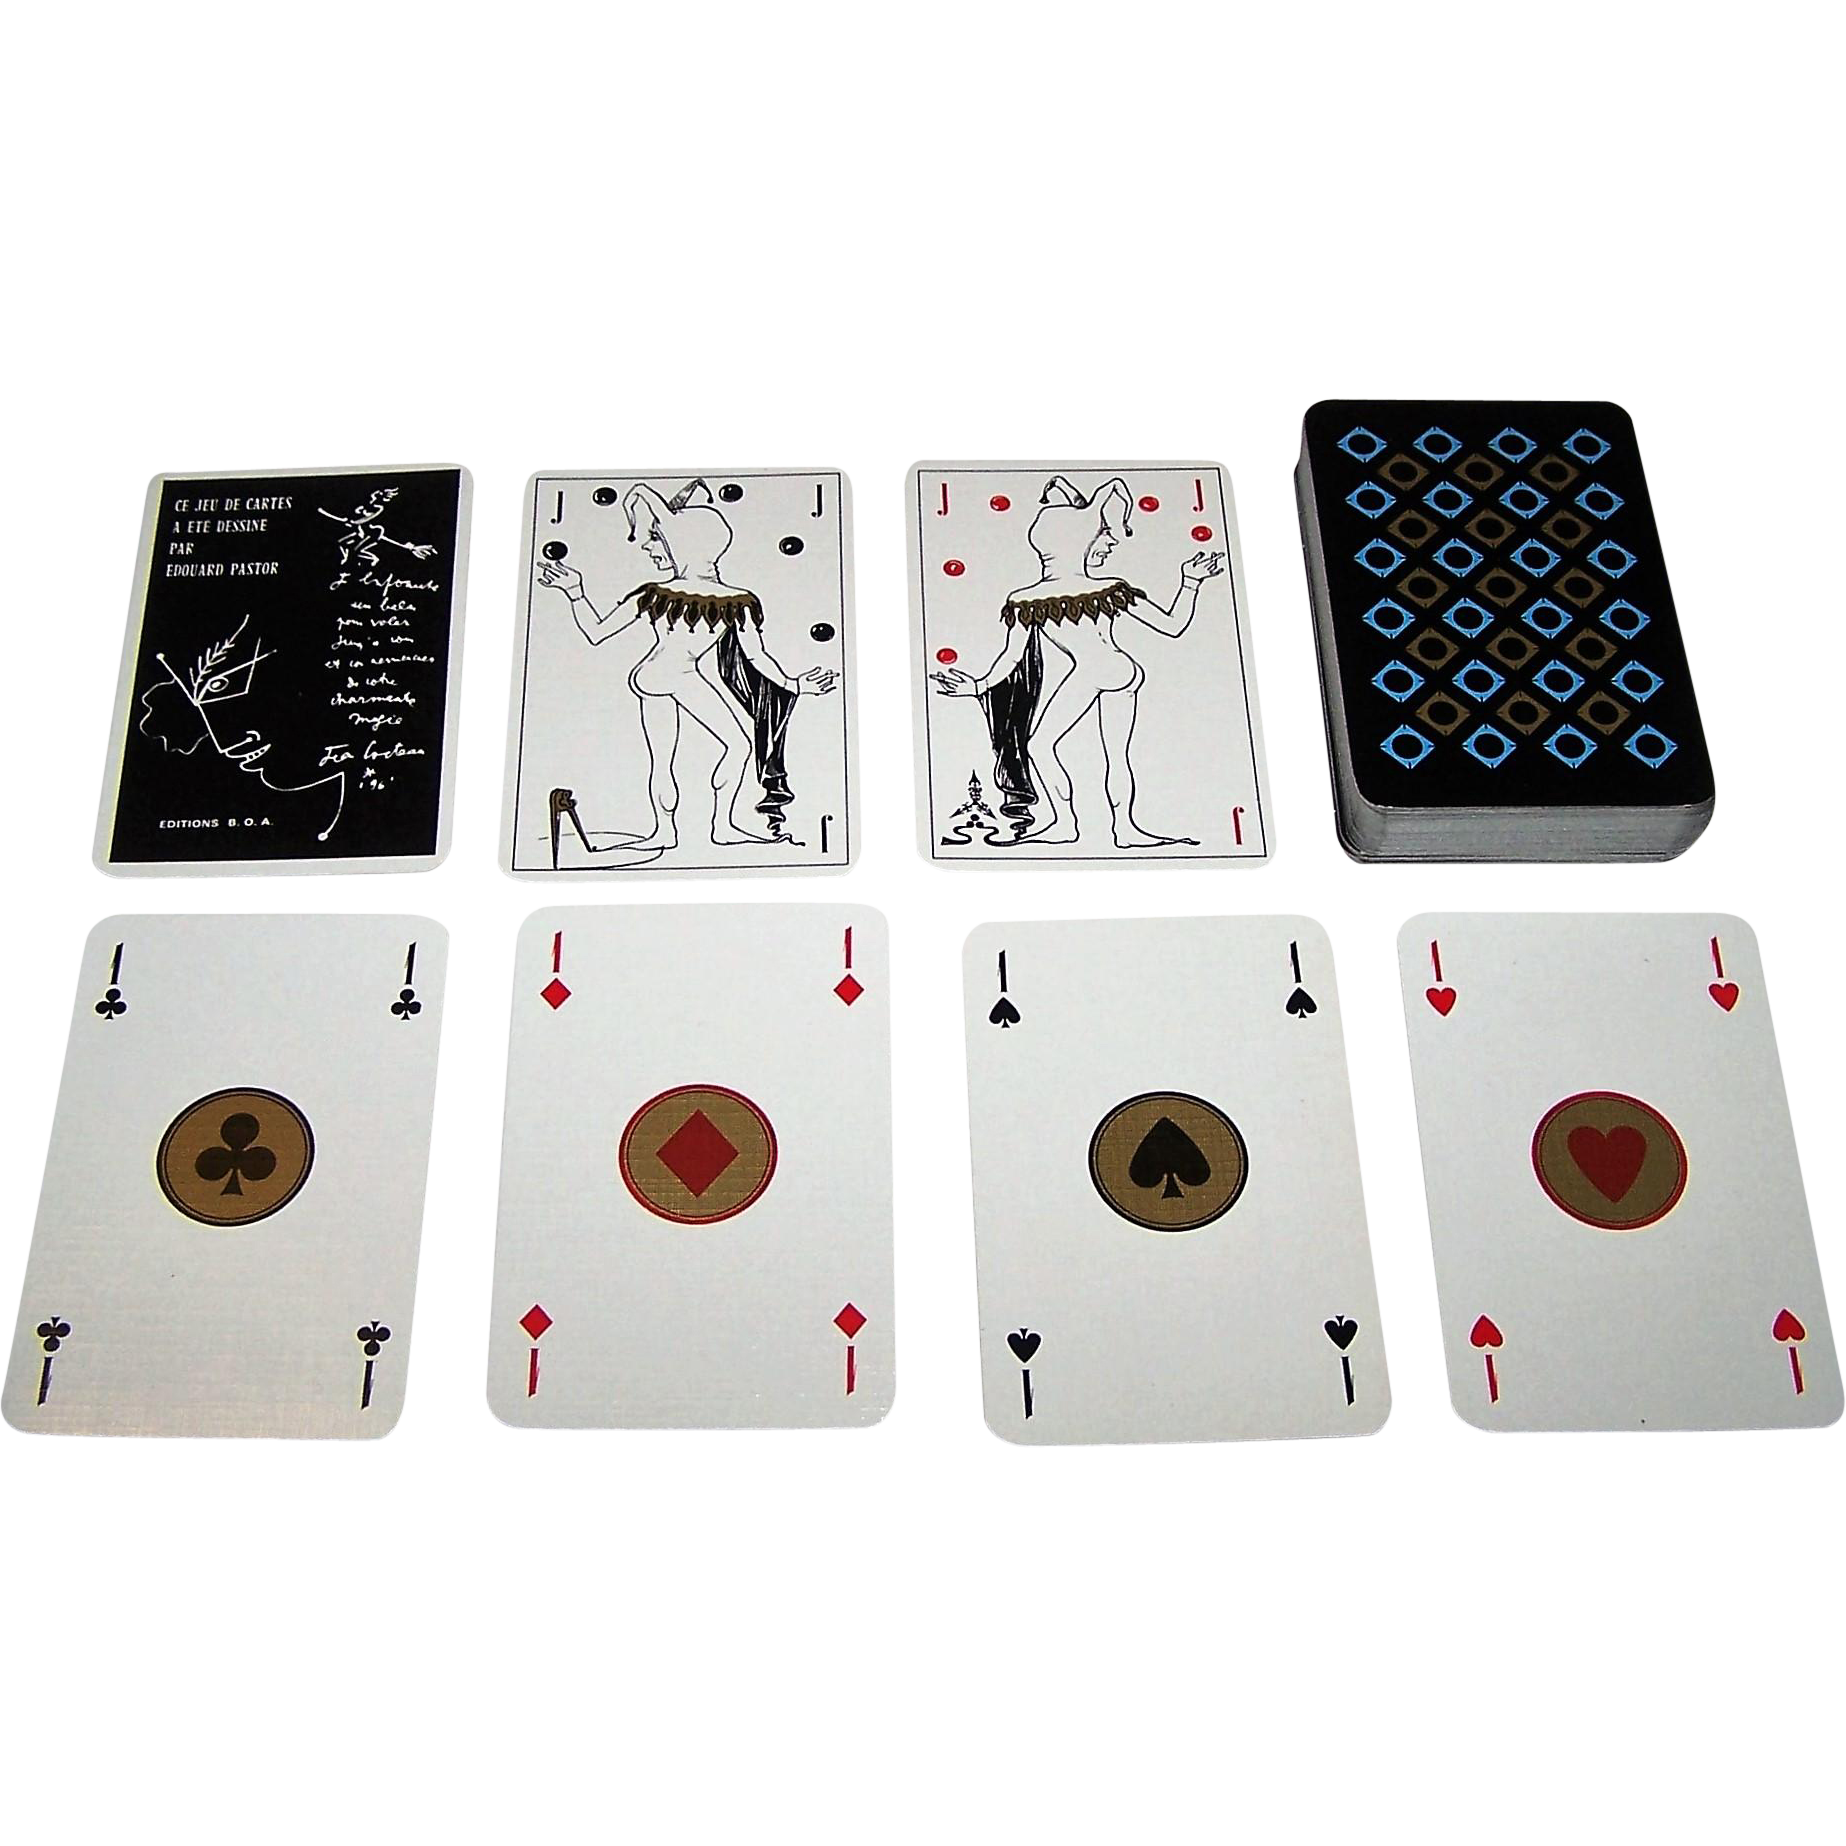 "Editions B.O.A. ""Edouard Pastor"" Playing Cards, c.1970s"